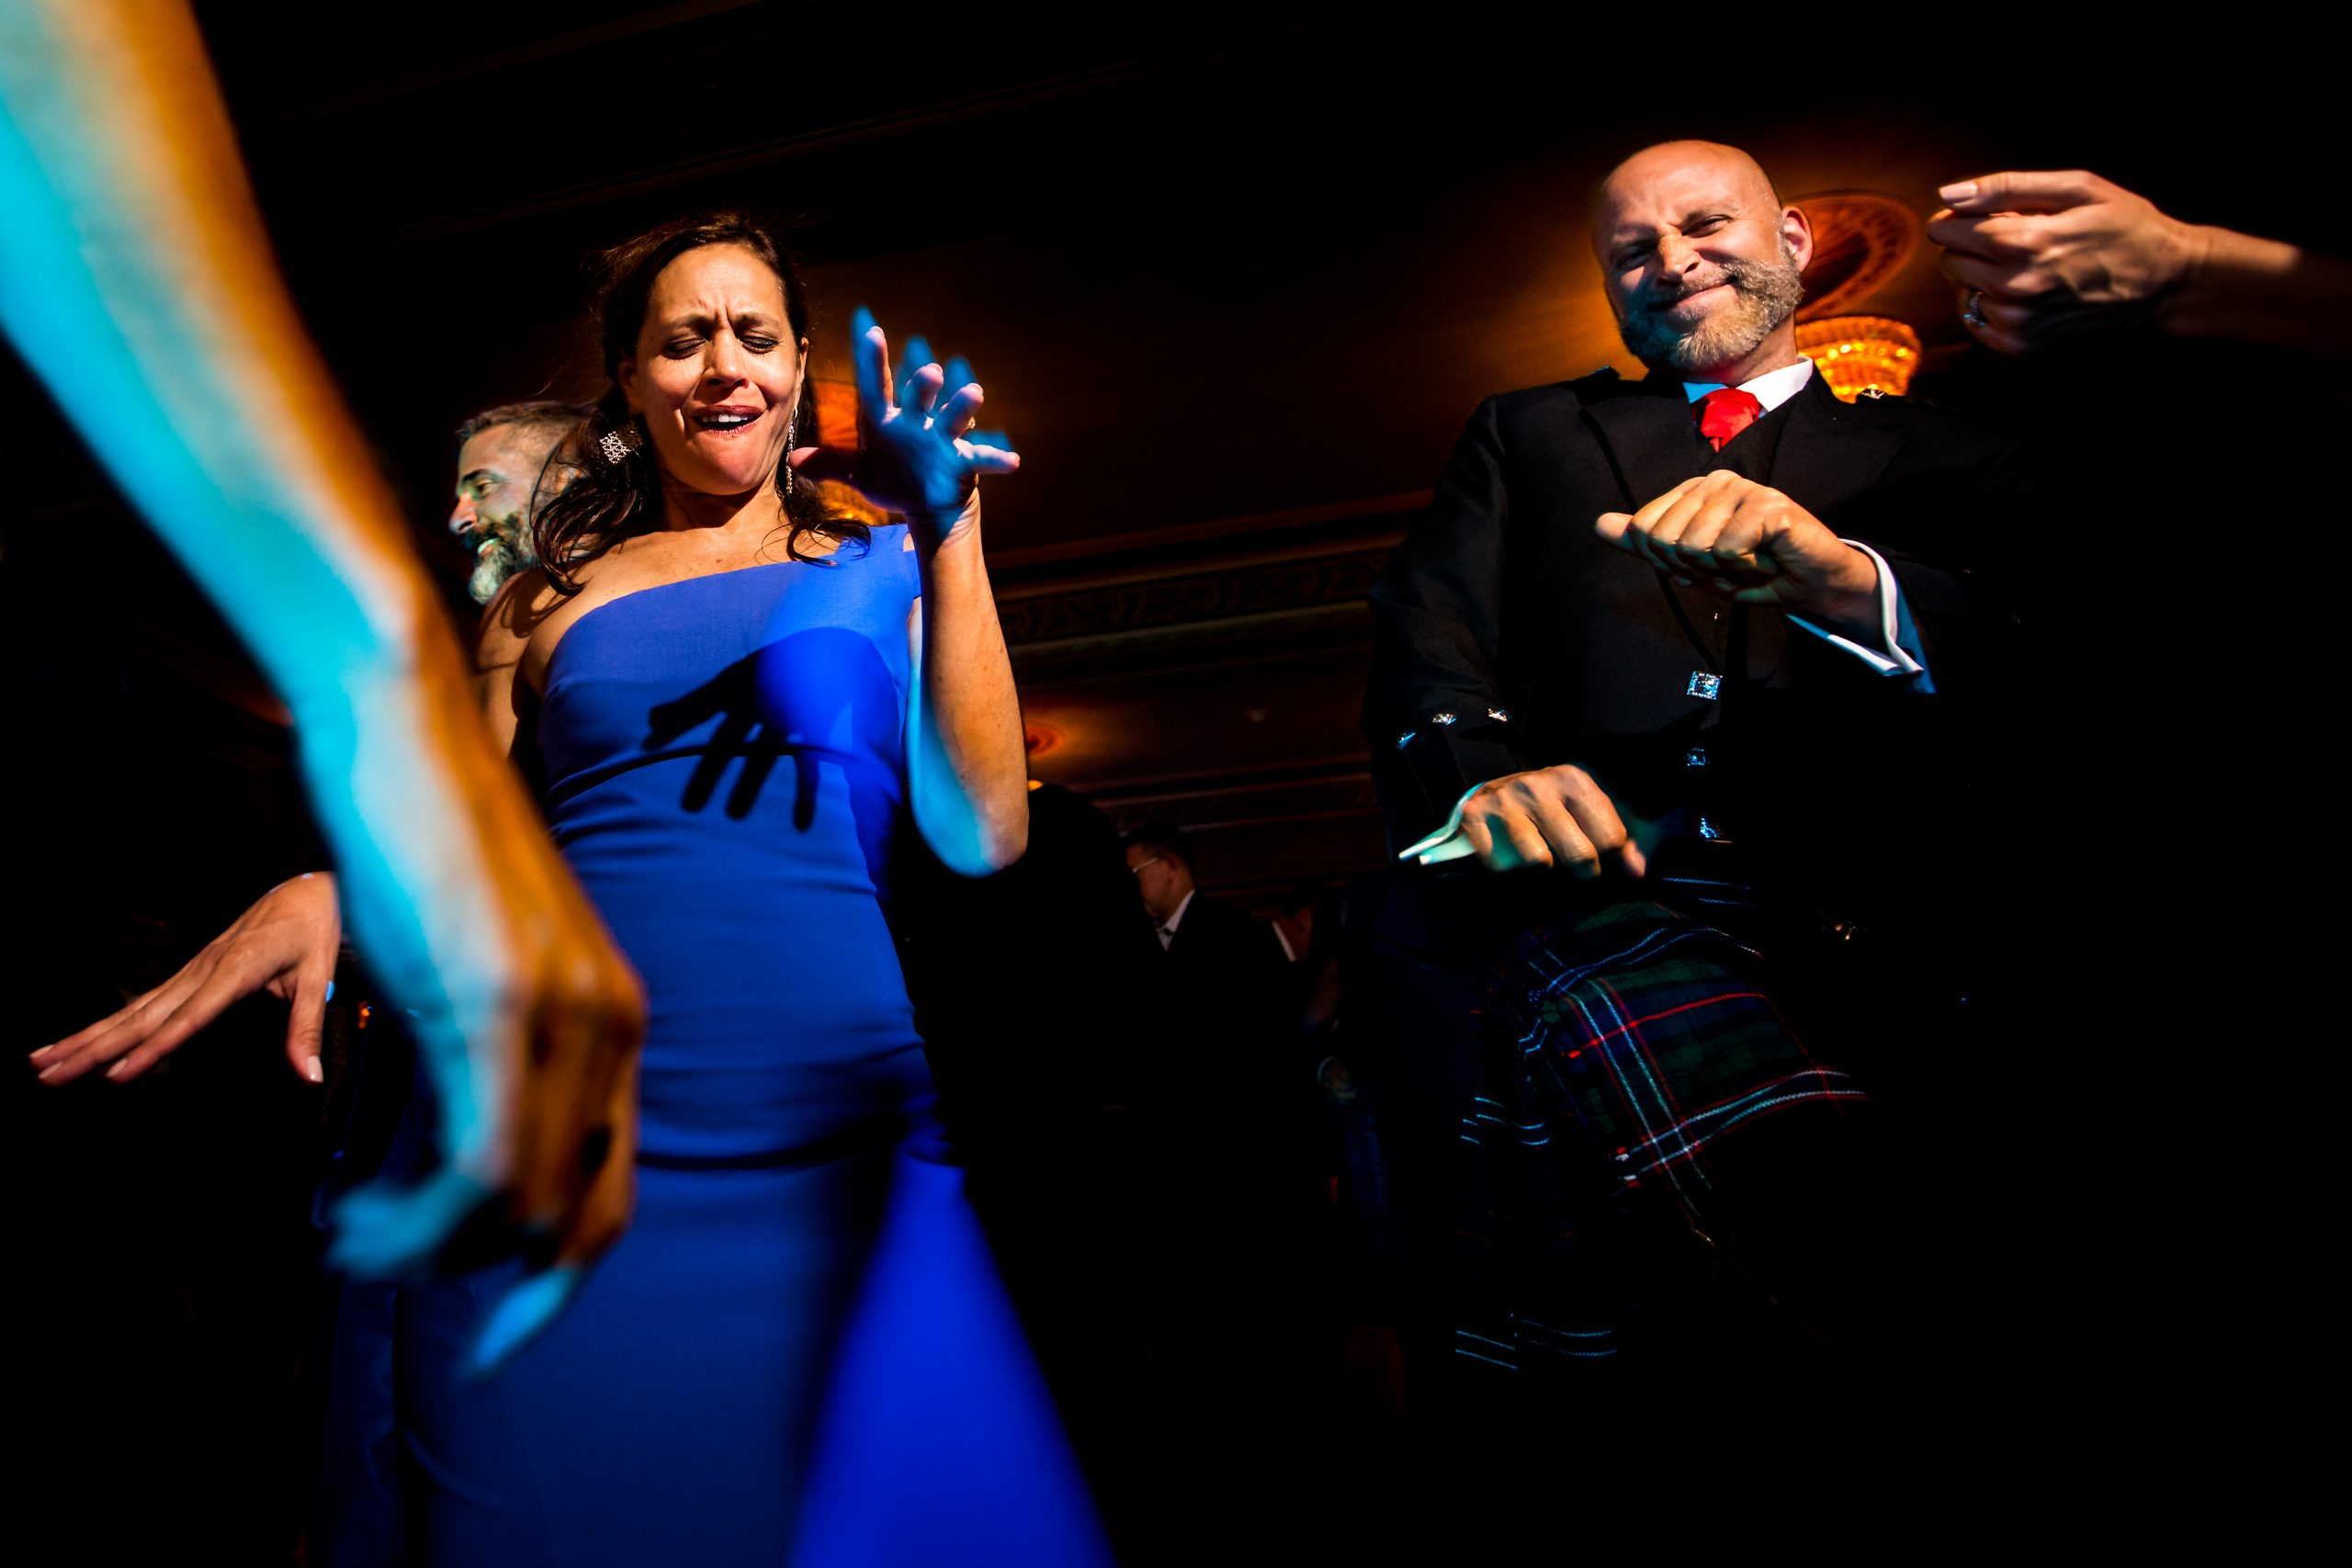 Man in kilt dances with wedding guests at Fairmont Banff Springs Hotel